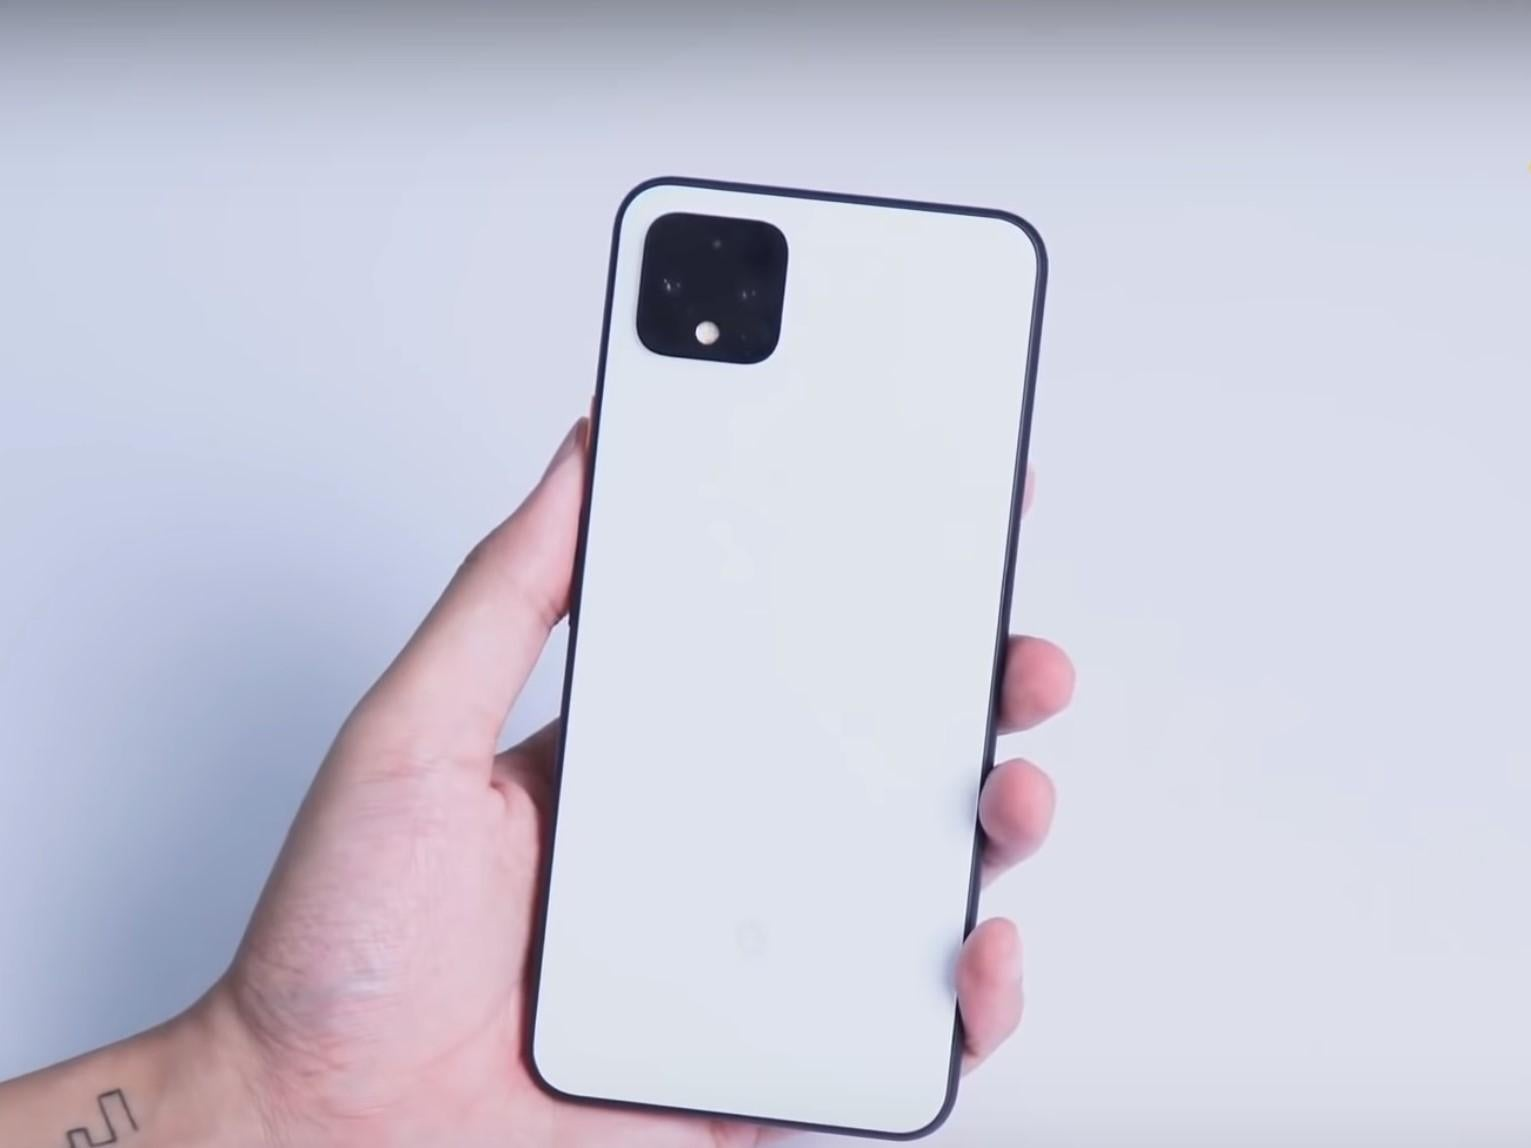 Pixel 4 XL video leaks reveal astrophotography camera and other key features